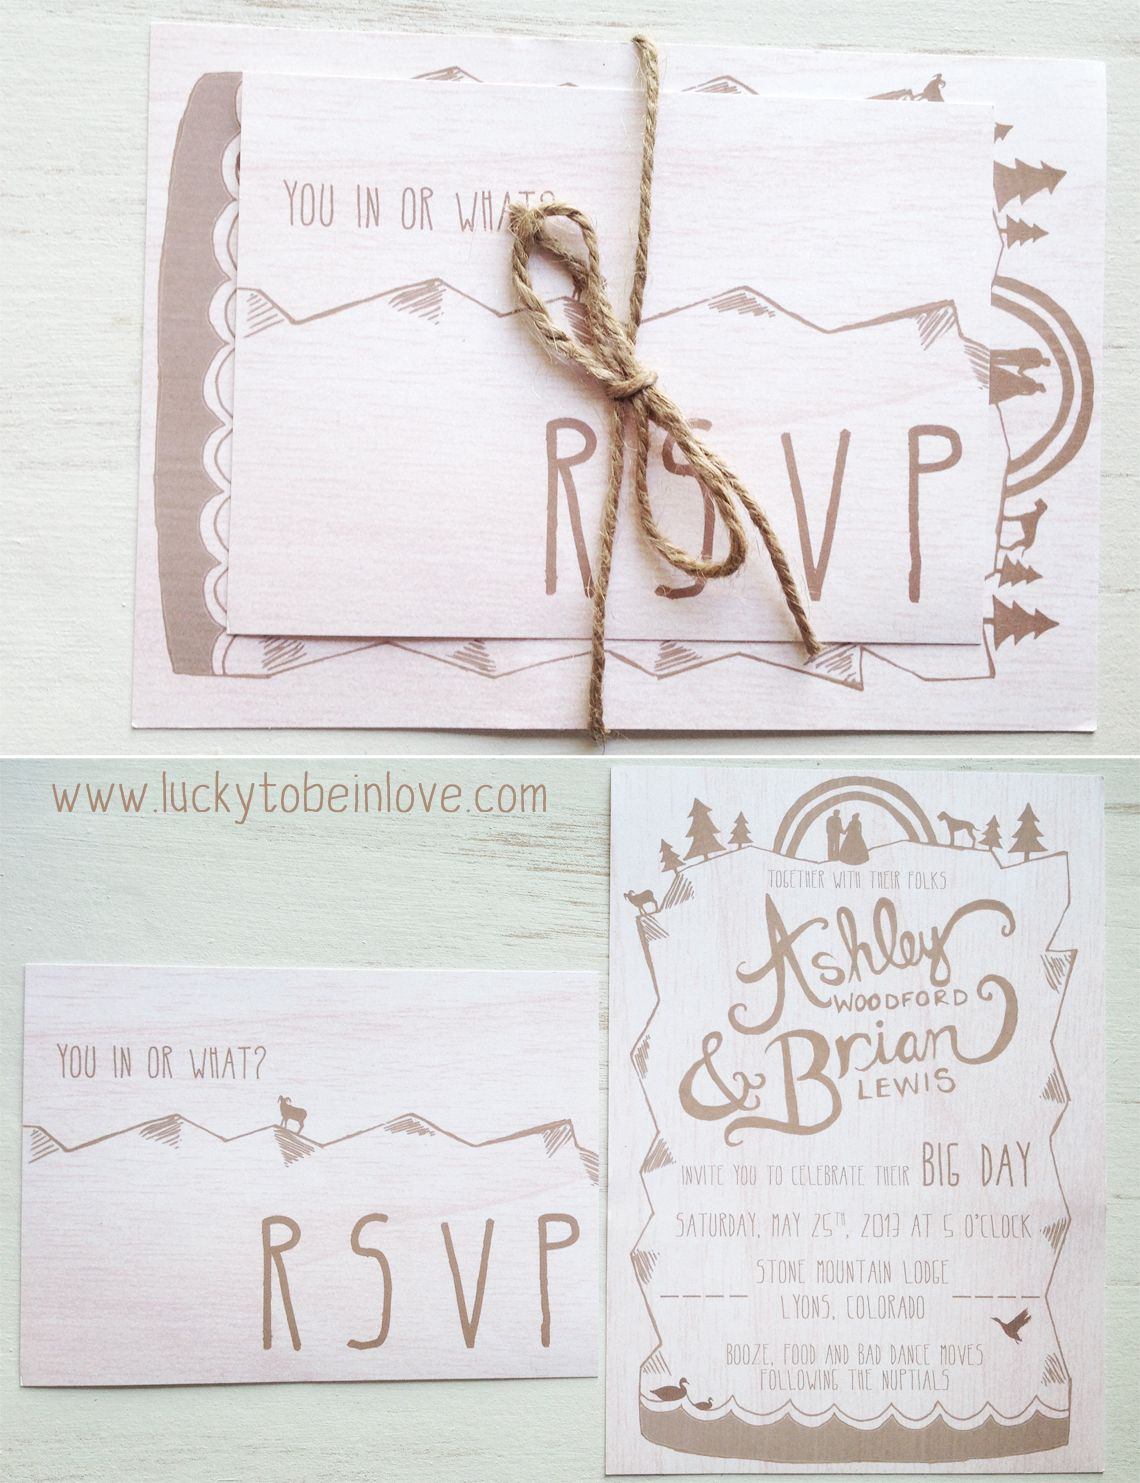 i like the idea of including the RSVP card inside, also